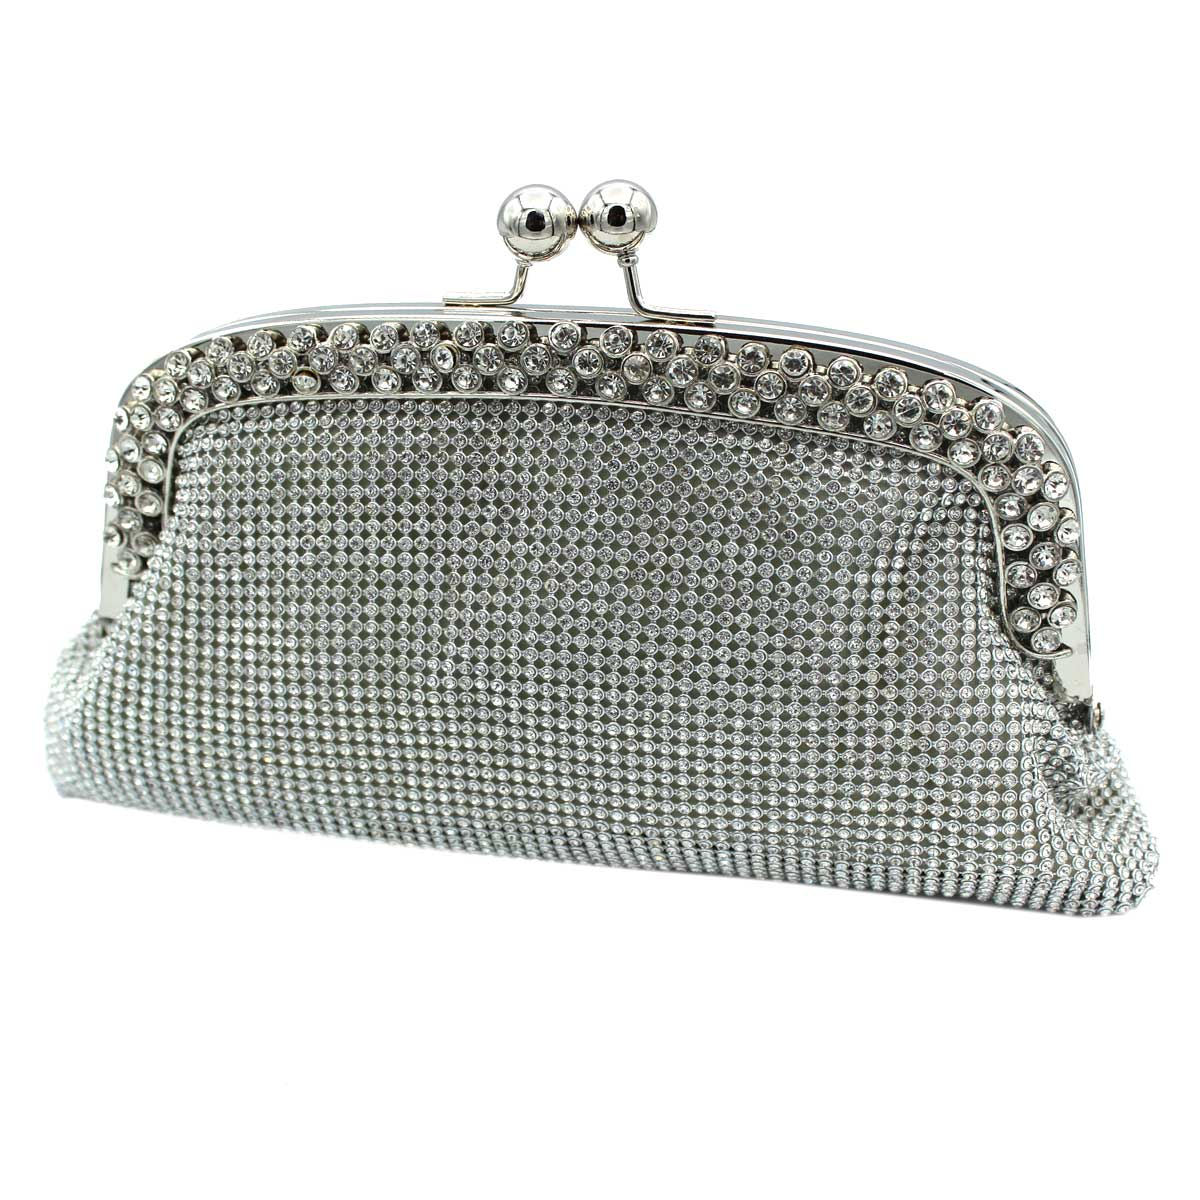 Women S Evening Clutch Bag For Party With Rhinestones Mice Moon Y4515 Silver